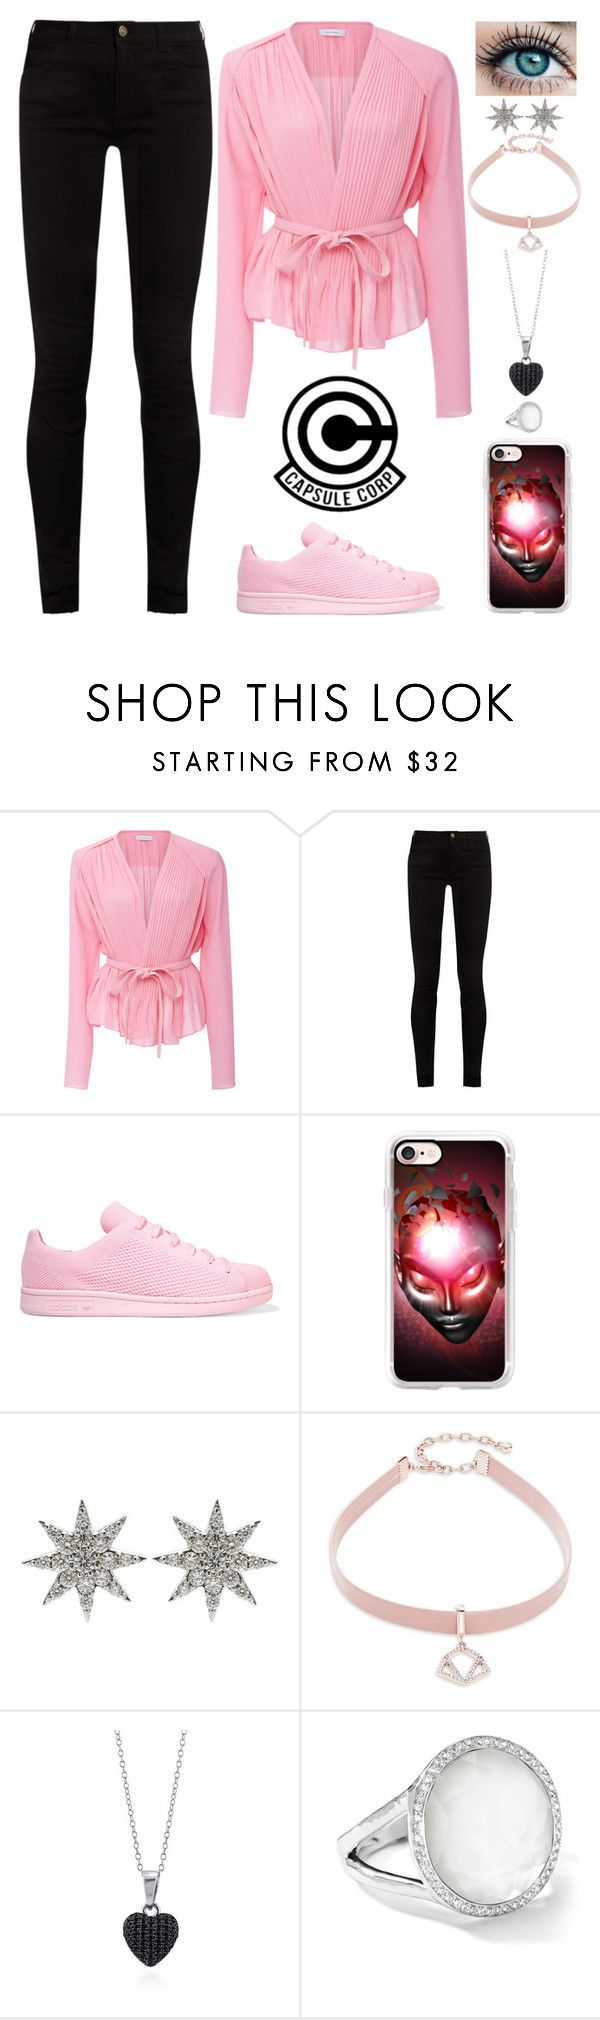 """""""Dragon Ball Inspired"""" by lucy-wolf ❤ liked on Polyvore featuring Carven, Gucci, adidas Originals, Casetify, Bee Goddess, Design Lab, BERRICLE and Ippolita"""